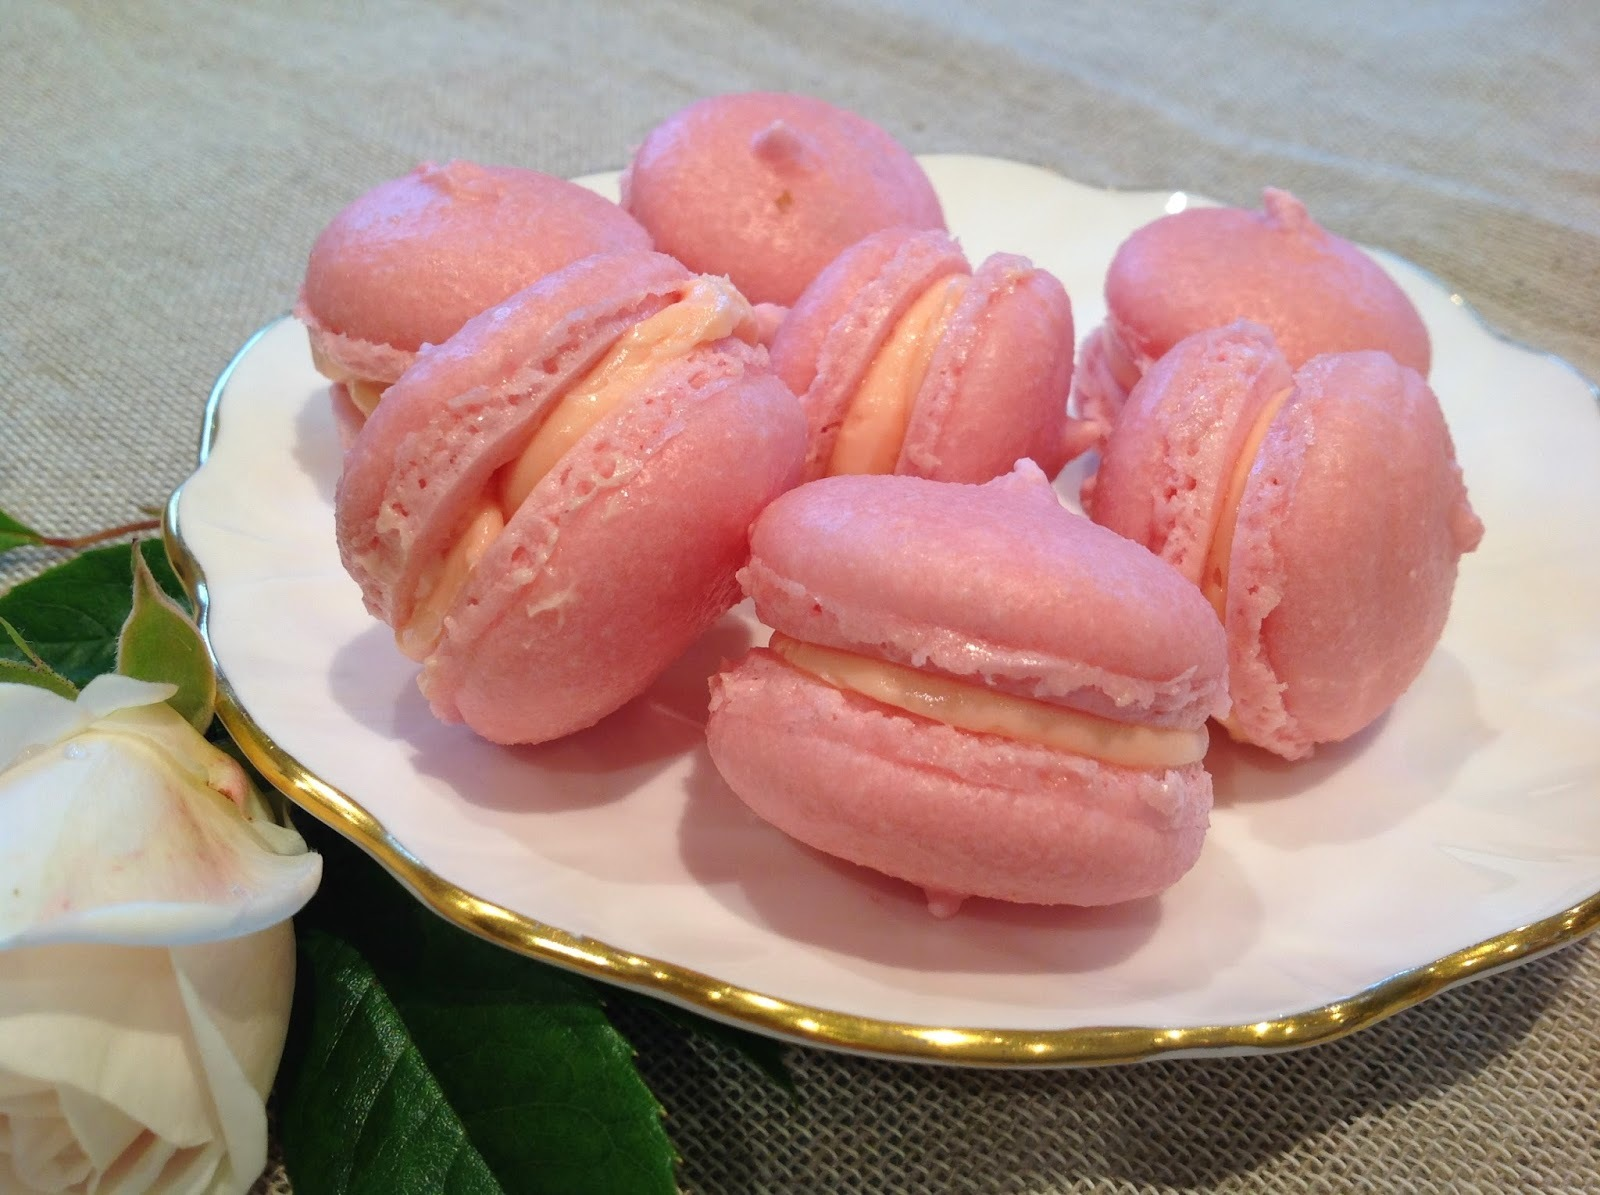 Classic French Macaroons (Macarons) - Delicious Magazine recipe